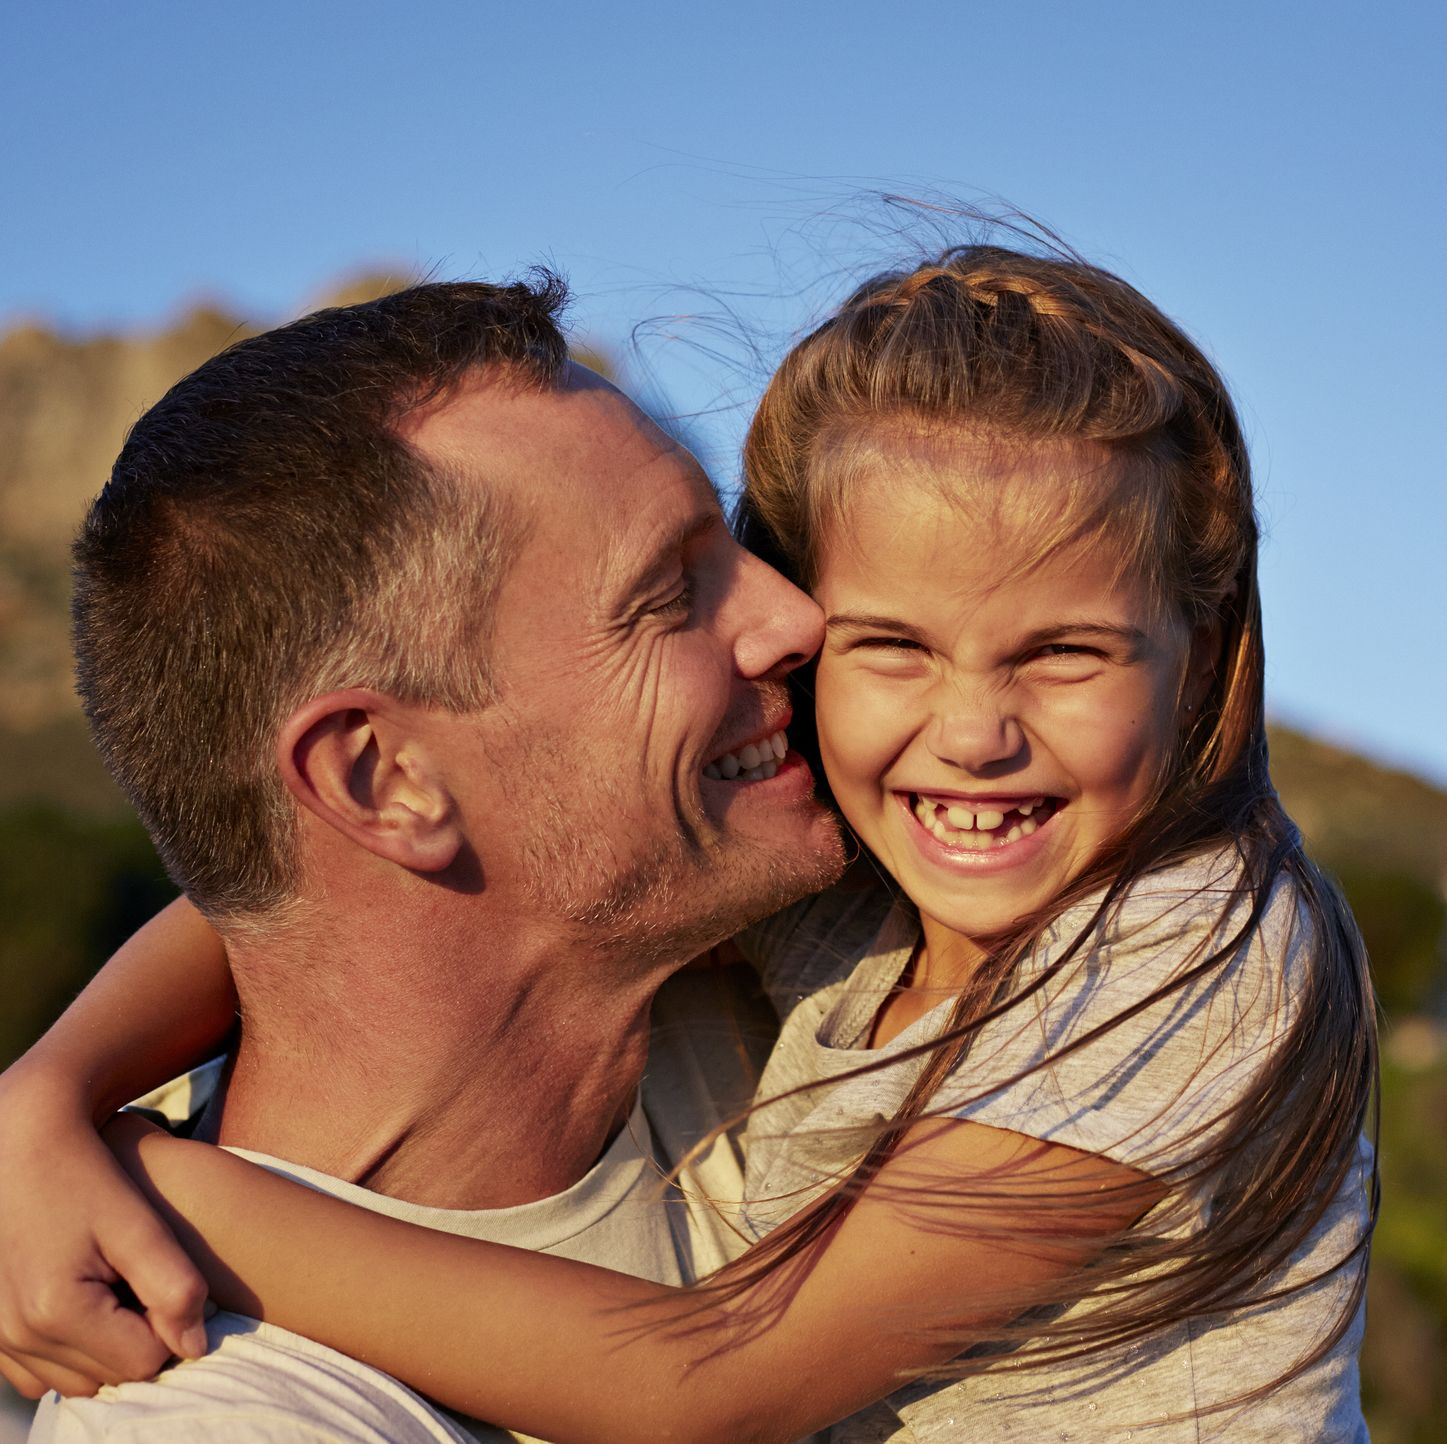 20 Heartwarming Fatherhood Quotes From Celebrity Dads